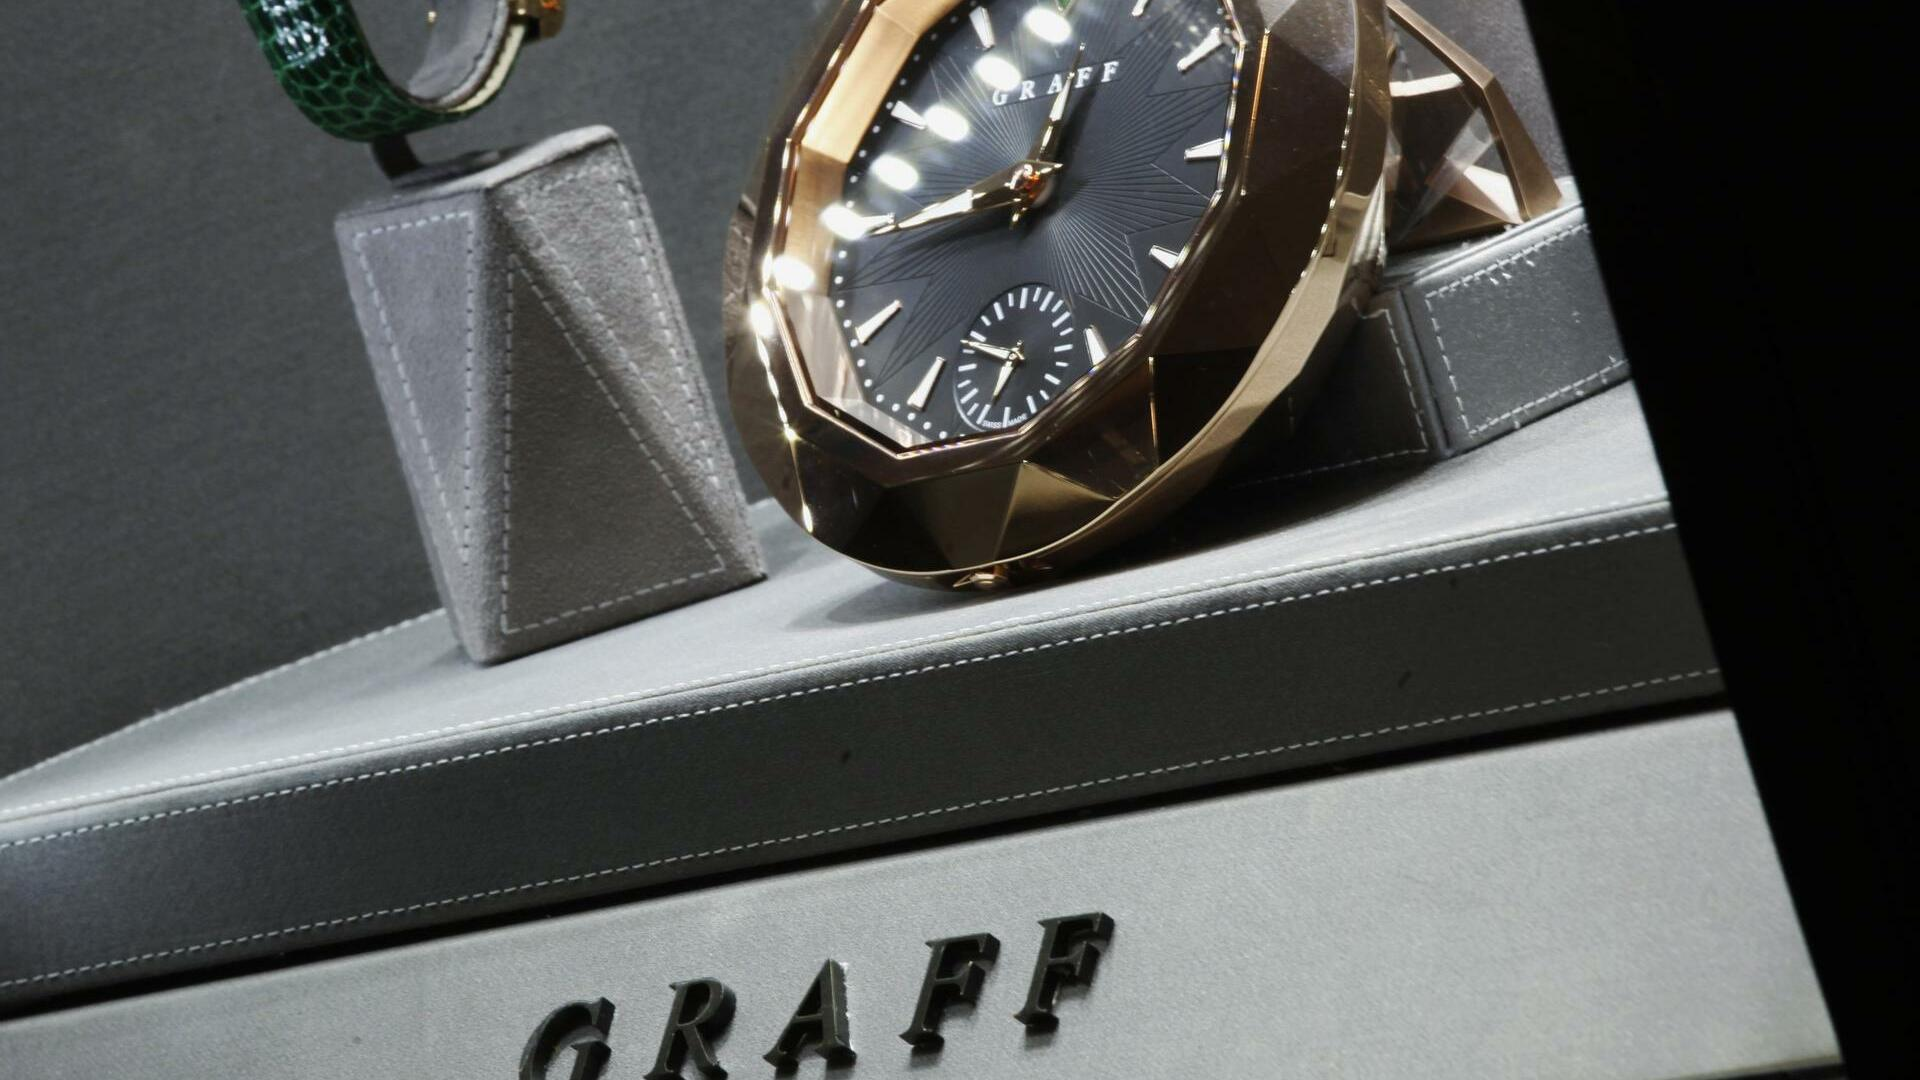 Luxury clocks and watches are displayed inside a Graff Diamonds store at Peninsula Hotel in Hong Kong Quelle: REUTERS